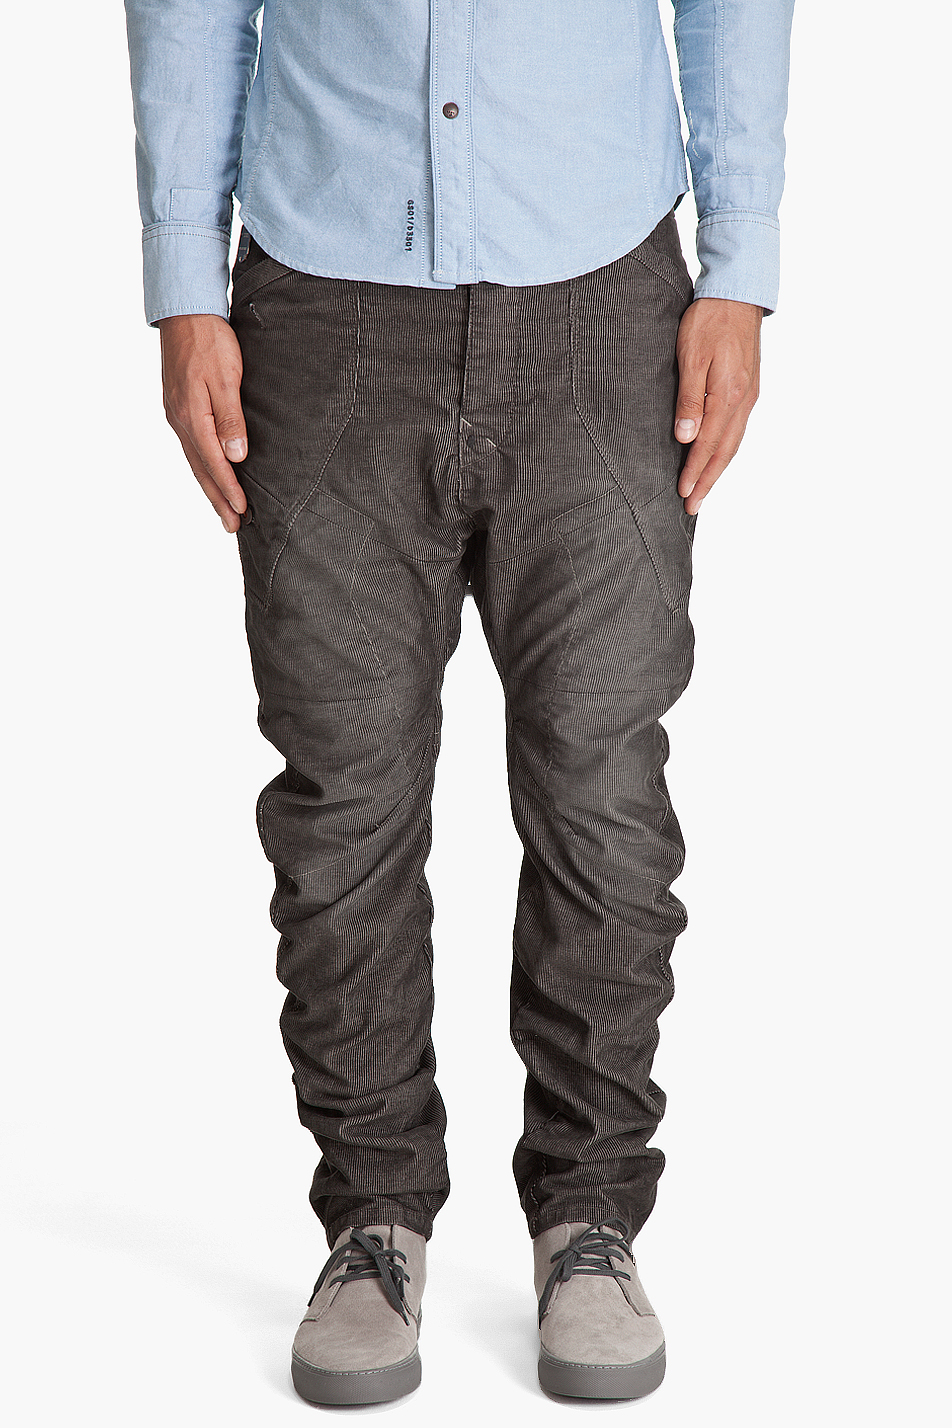 g star raw rail loose tapered jeans in black for men lyst. Black Bedroom Furniture Sets. Home Design Ideas